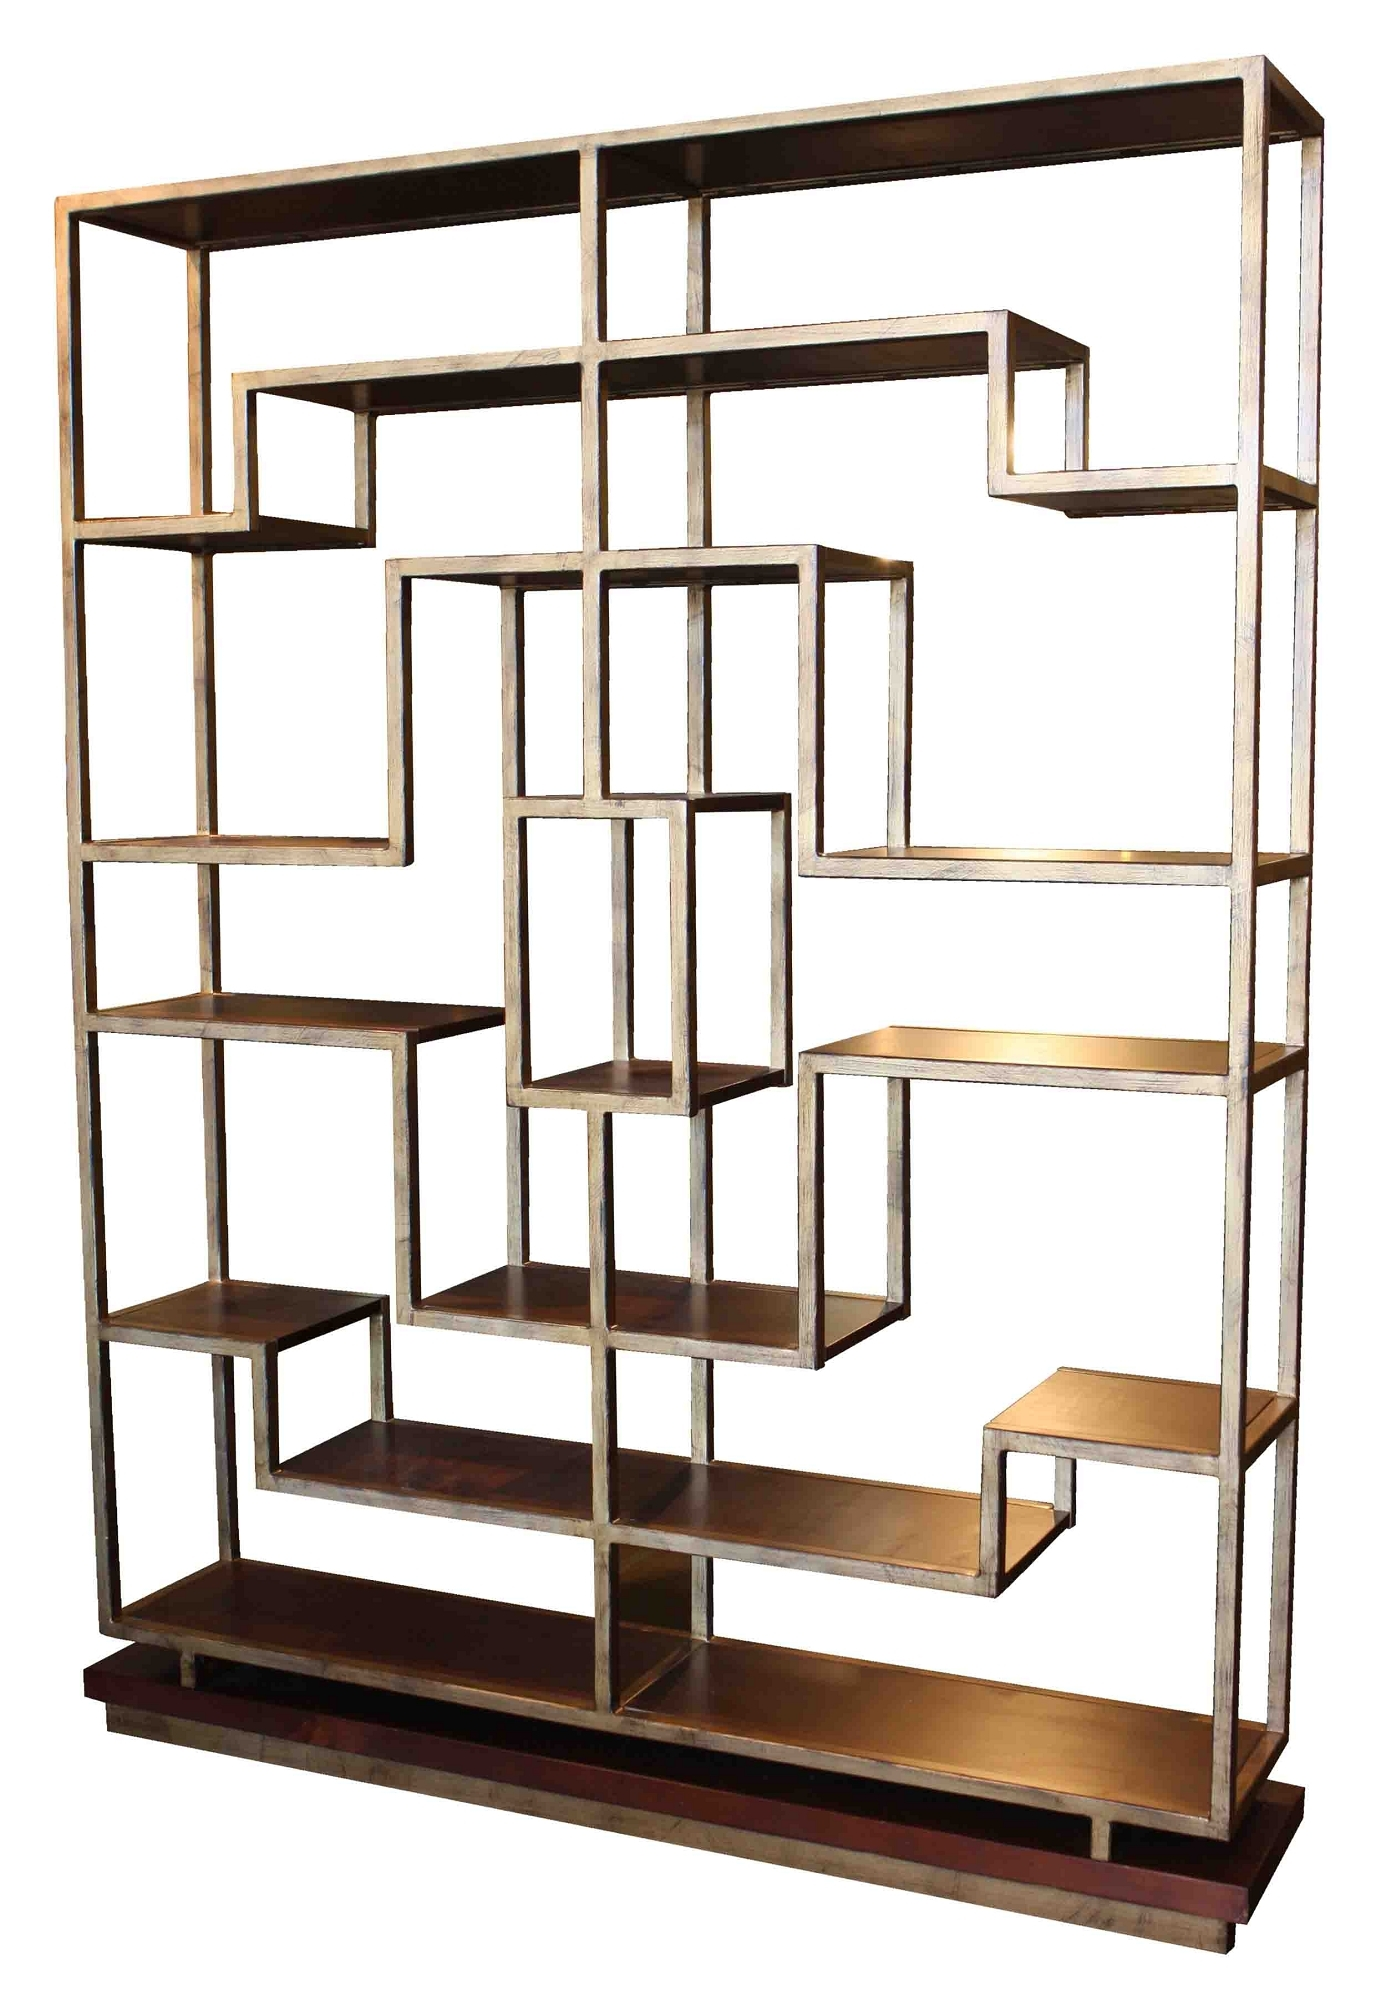 Bookcases Ideas Recommended Wonderful Metal Bookcase Ideas Wood With Regard To High Quality Bookcases (View 5 of 15)